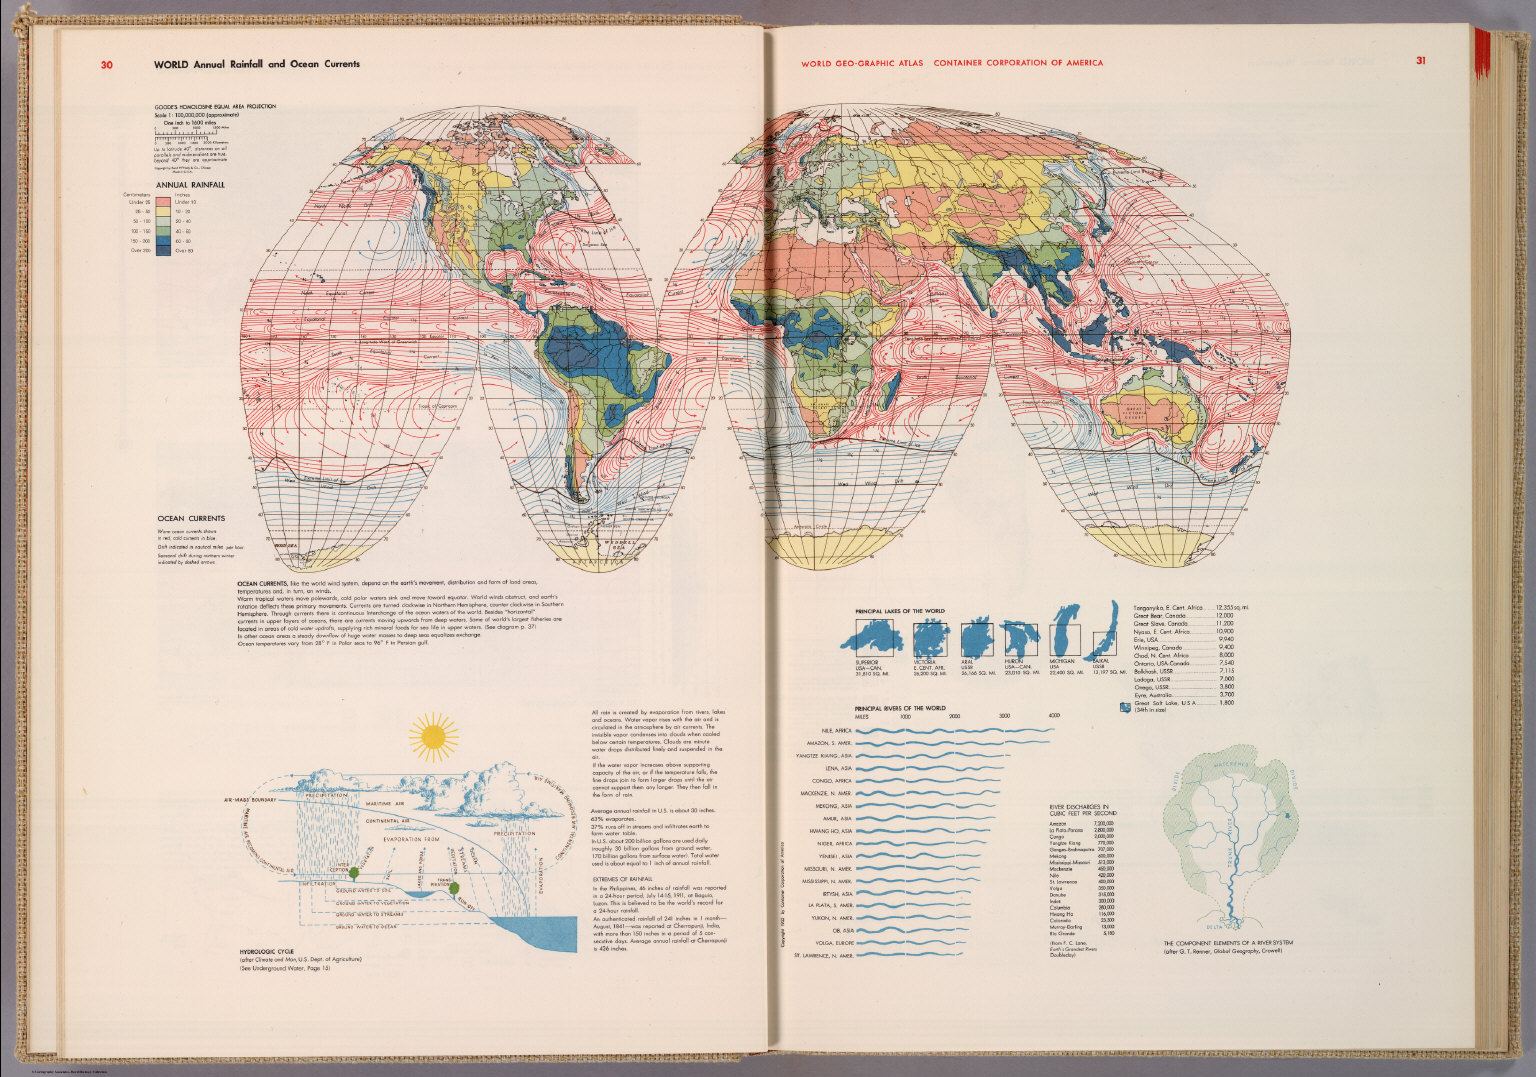 World annual rainfall and ocean currents david rumsey historical world annual rainfall and ocean currents gumiabroncs Choice Image